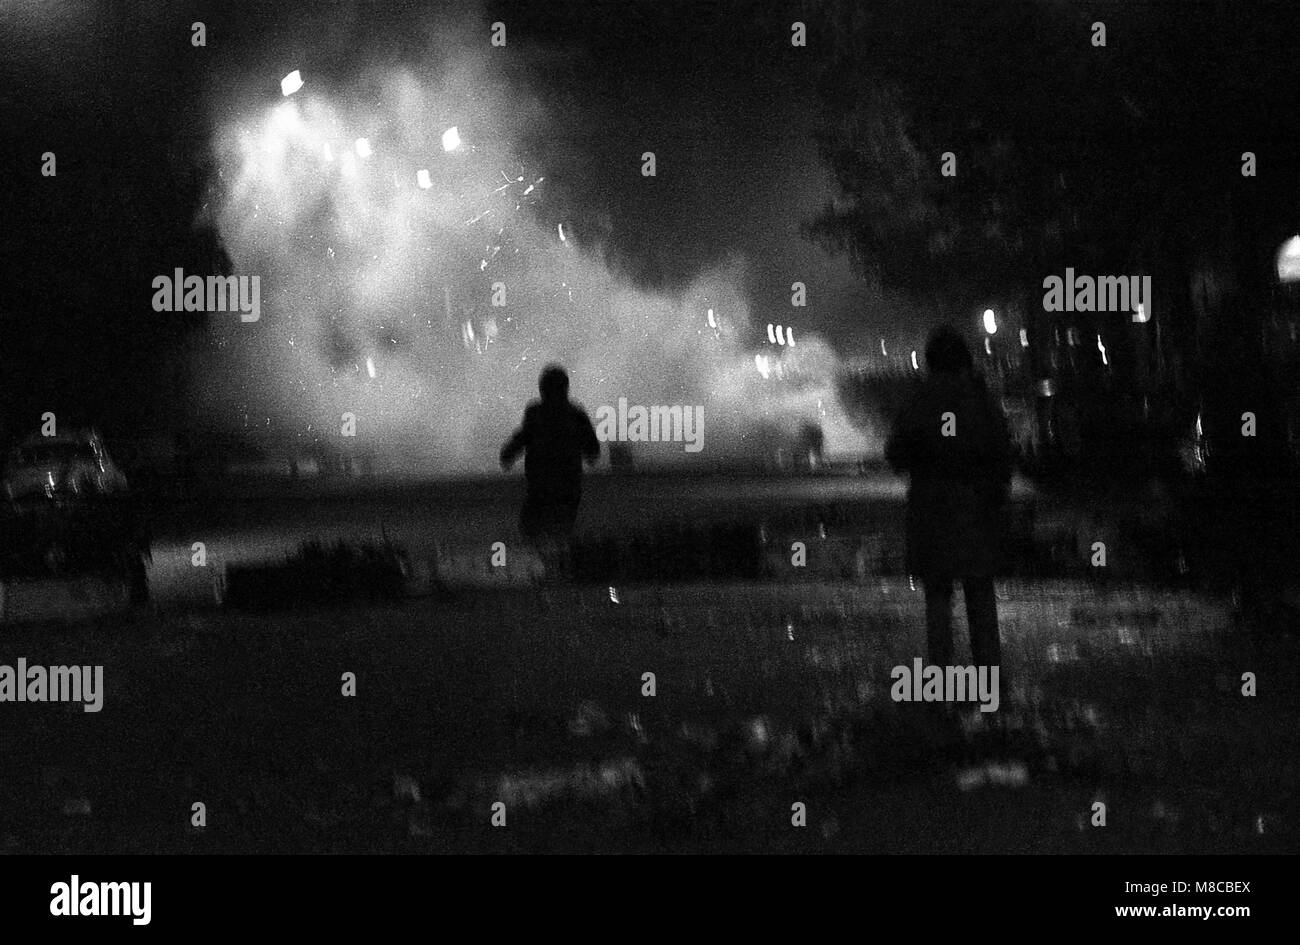 Philippe Gras / Le Pictorium -  May 1968 -  1968  -  France / Ile-de-France (region) / Paris  -  Clashes between - Stock Image